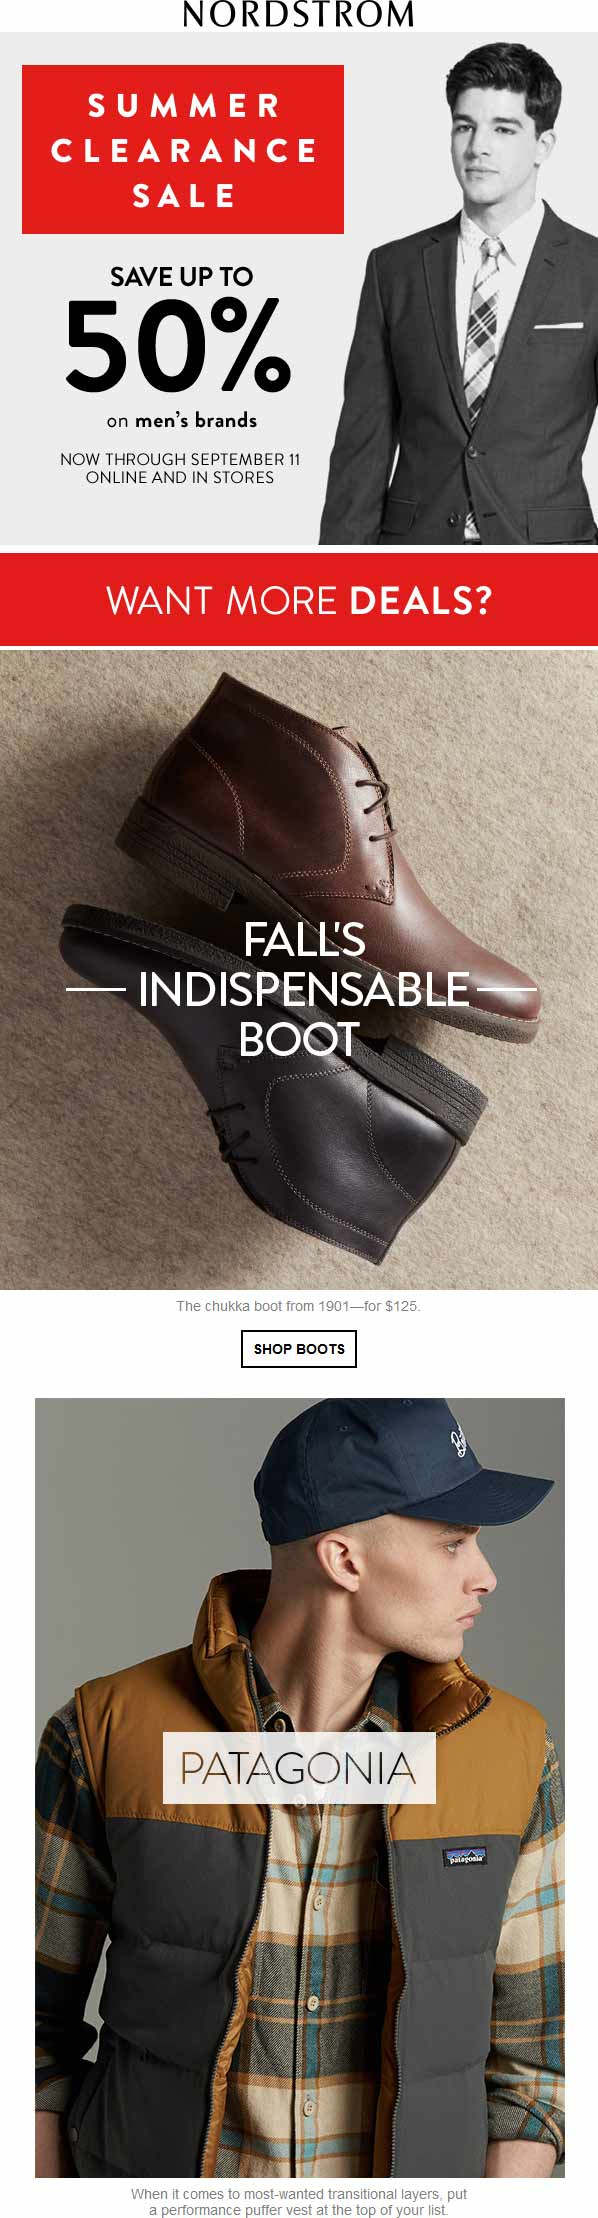 Nordstrom coupons & promo code for [August 2020]